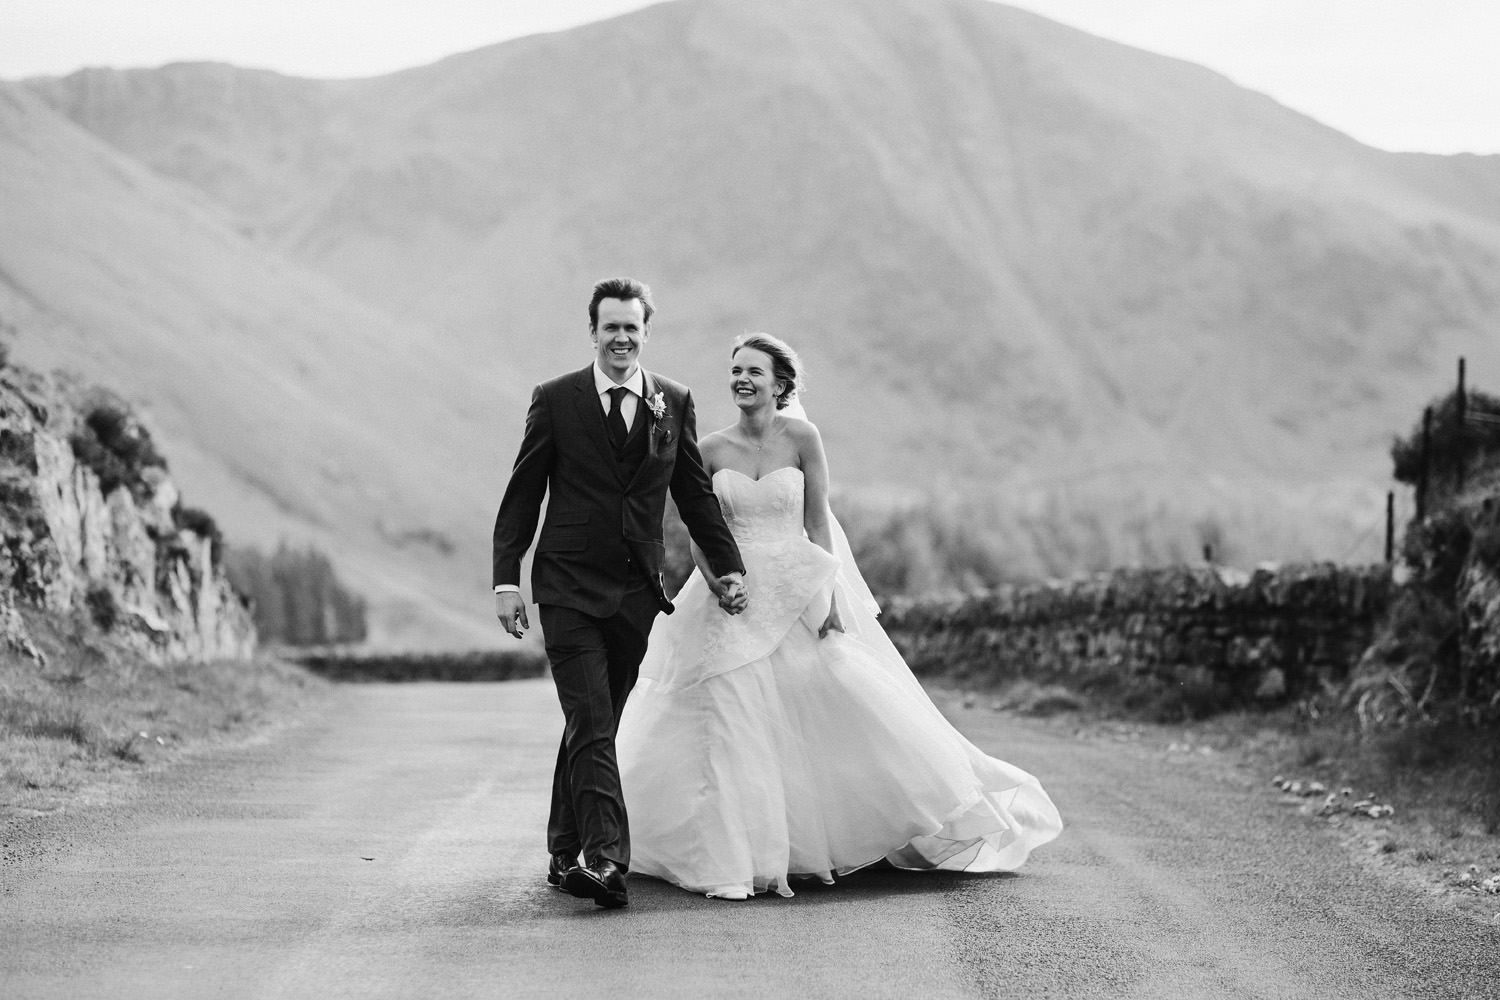 Bride and groom walking along a road in Cumbria